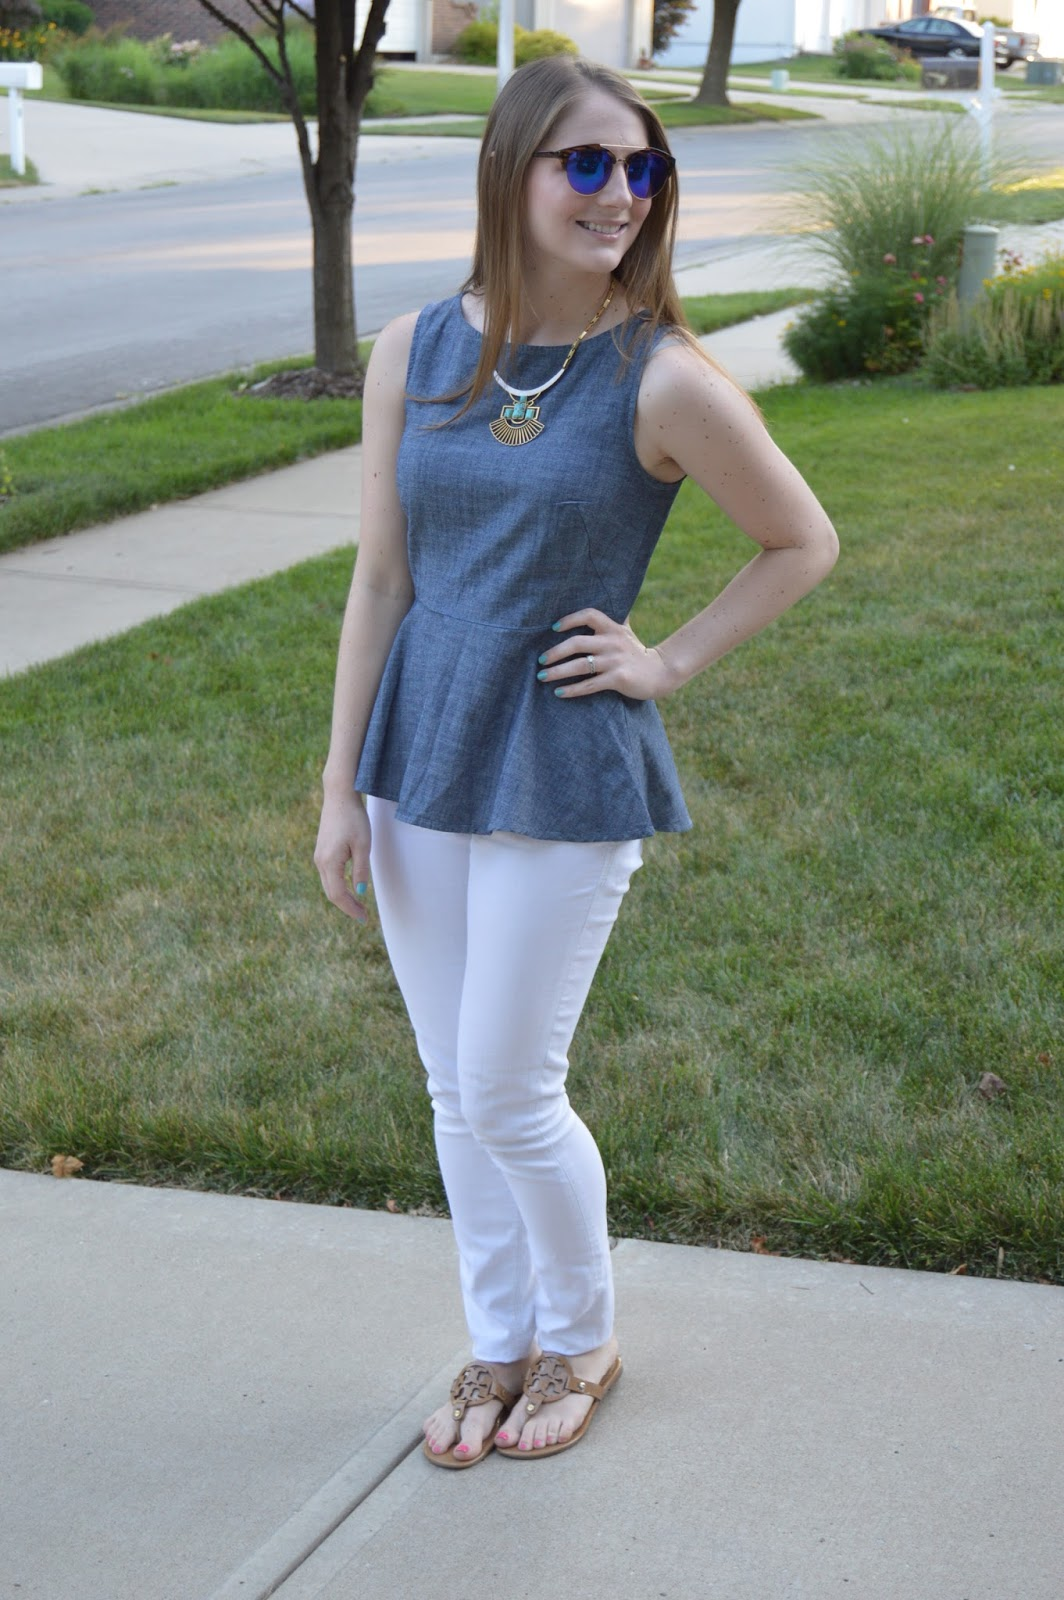 white jeans outfit ideas for summer | summer outfit ideas | what to wear this summer | summer style | chambray peplum top | what to wear with a chambray top | kansas city fashion blog | a memory of us |